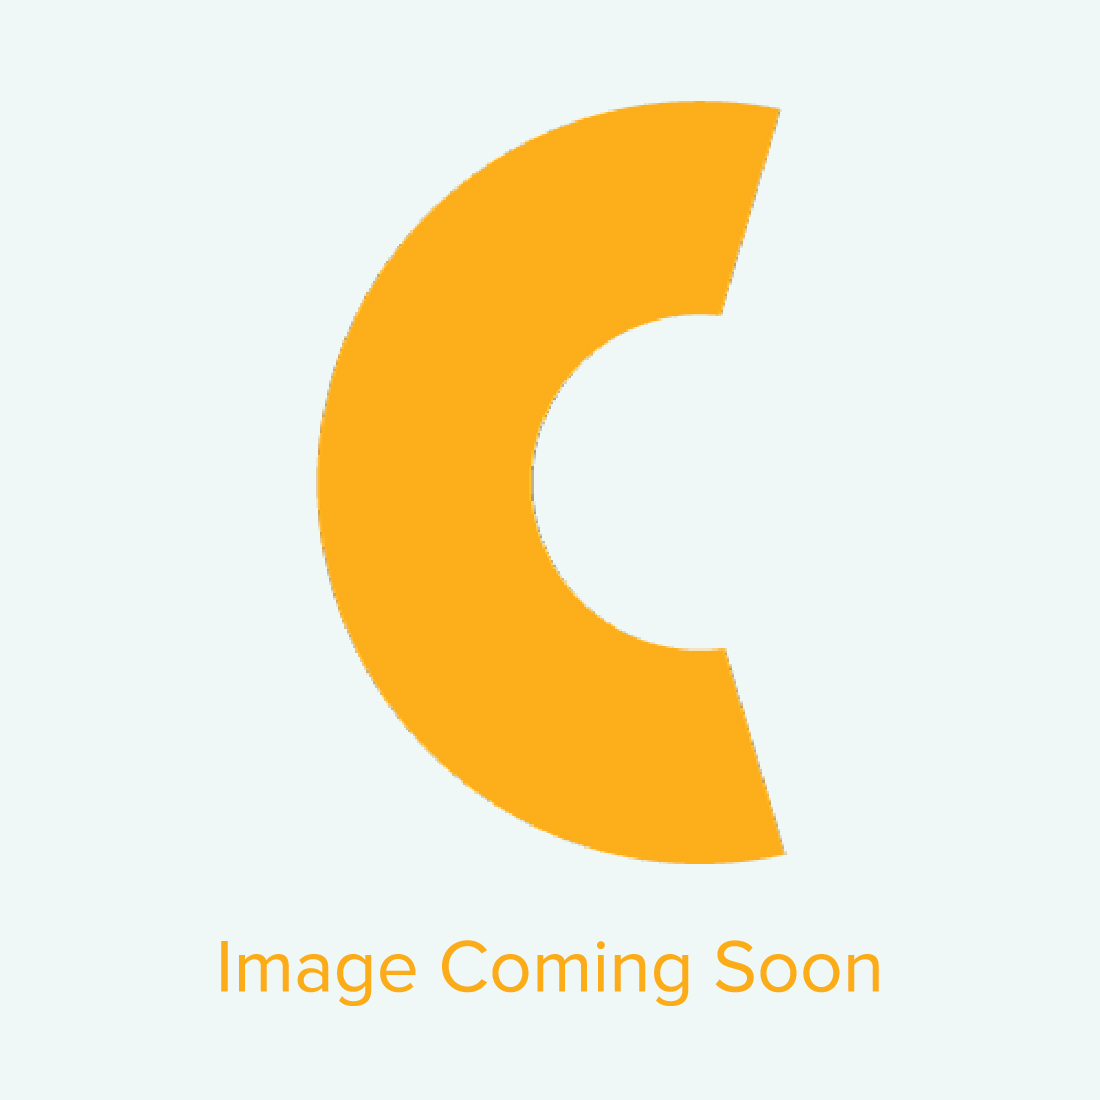 Sawgrass SG800 & Fusion IQ Heat Press Pro Kit